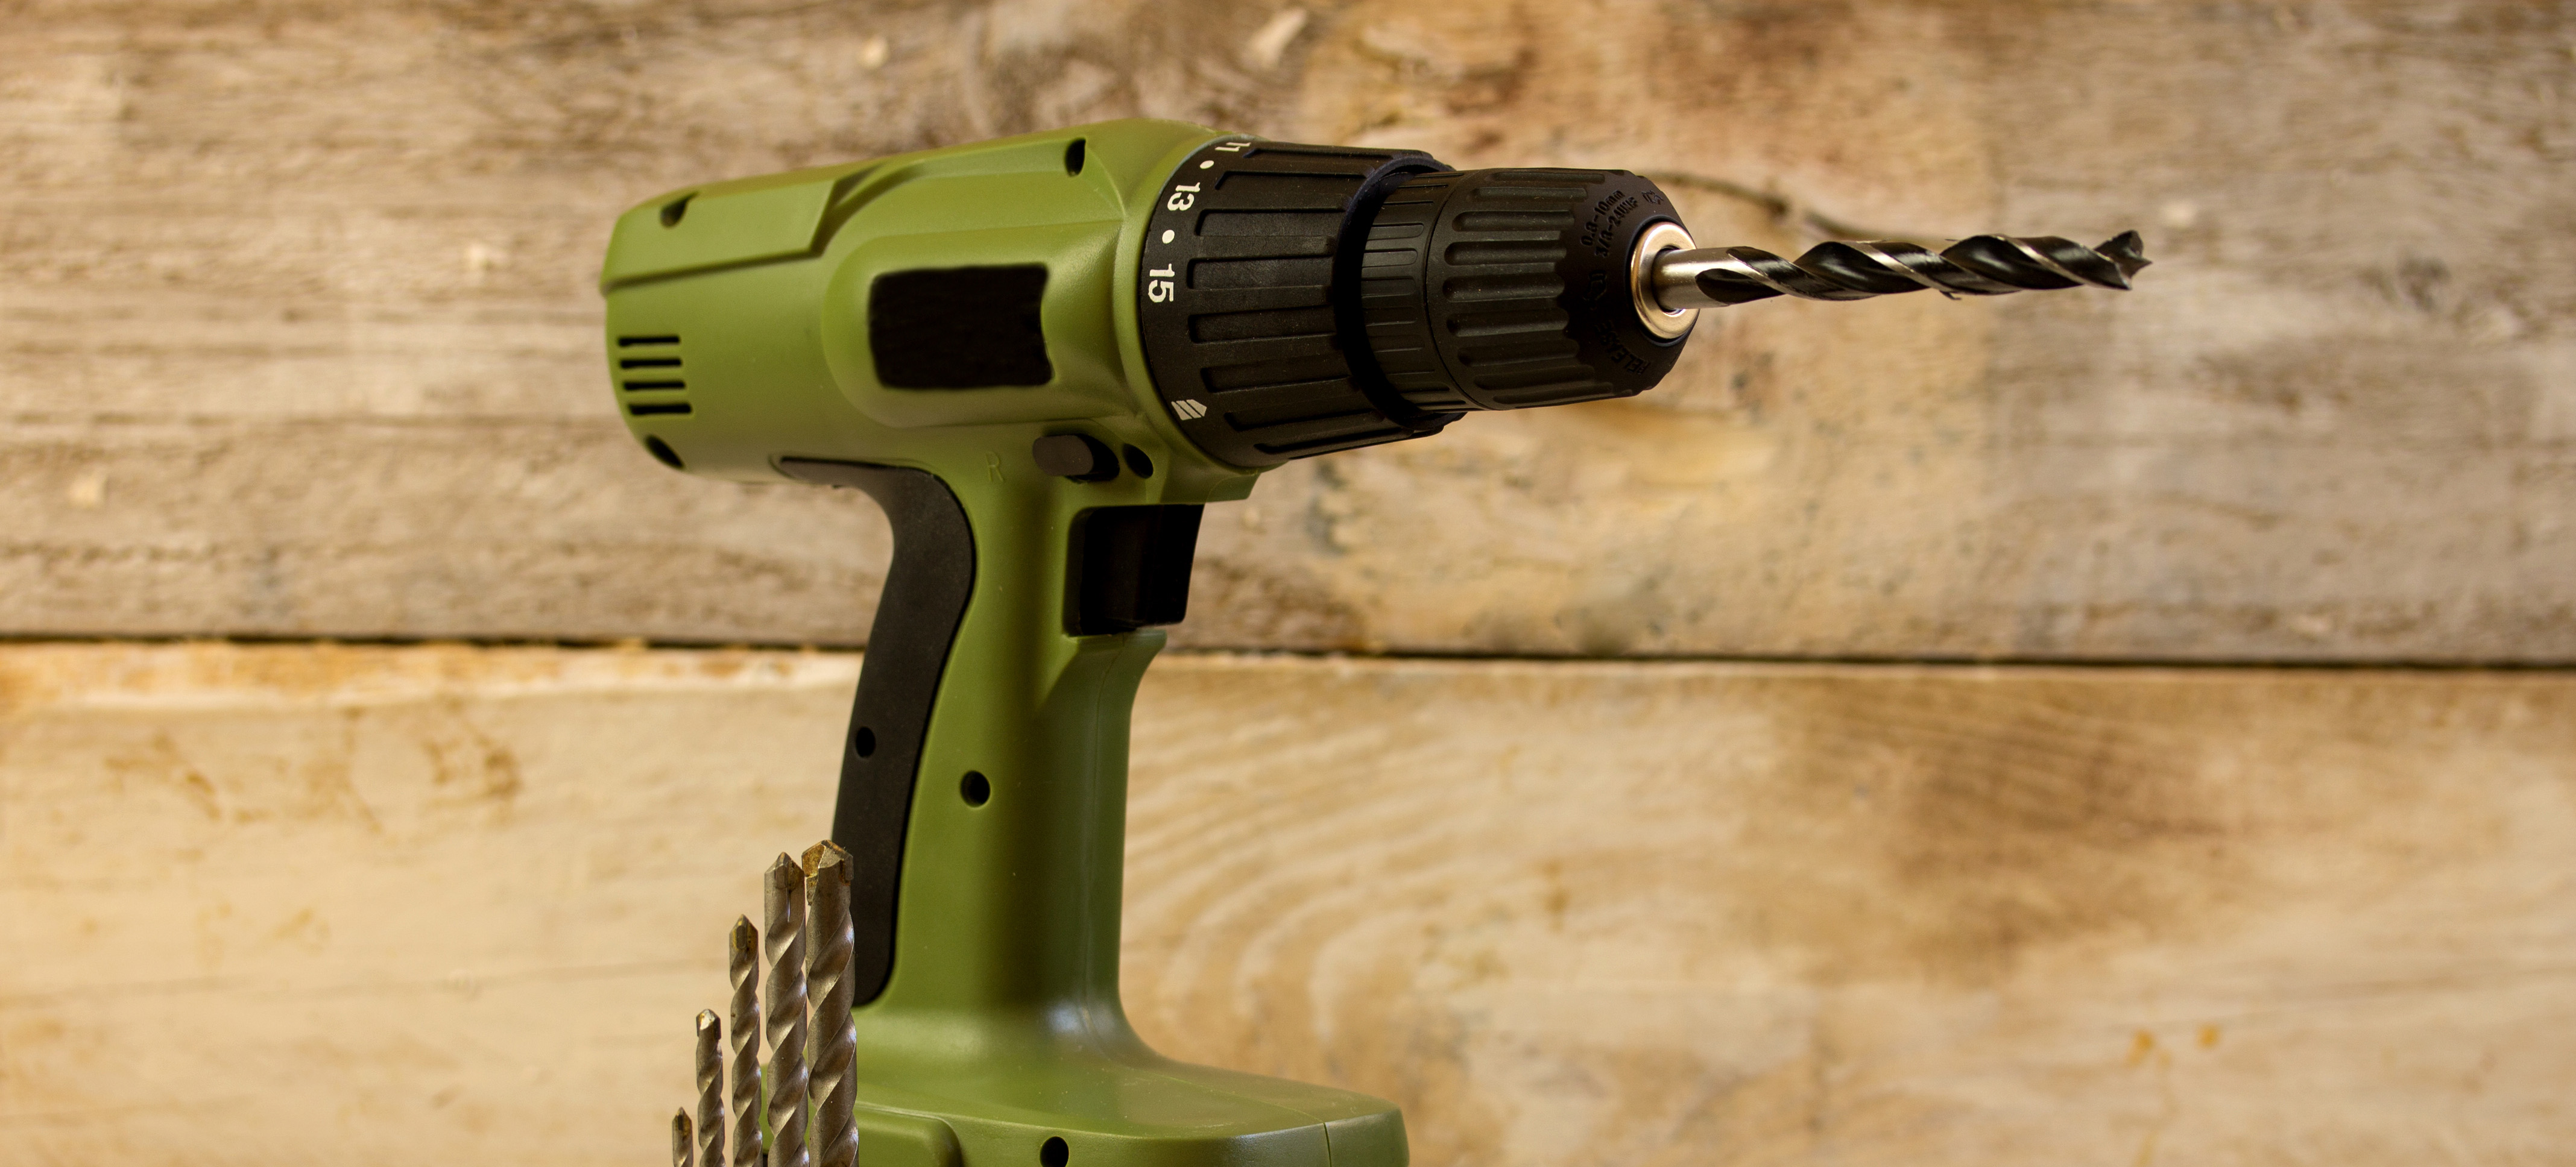 30 Tips for Hand and Power Tool Safety | Vivid Learning Systems